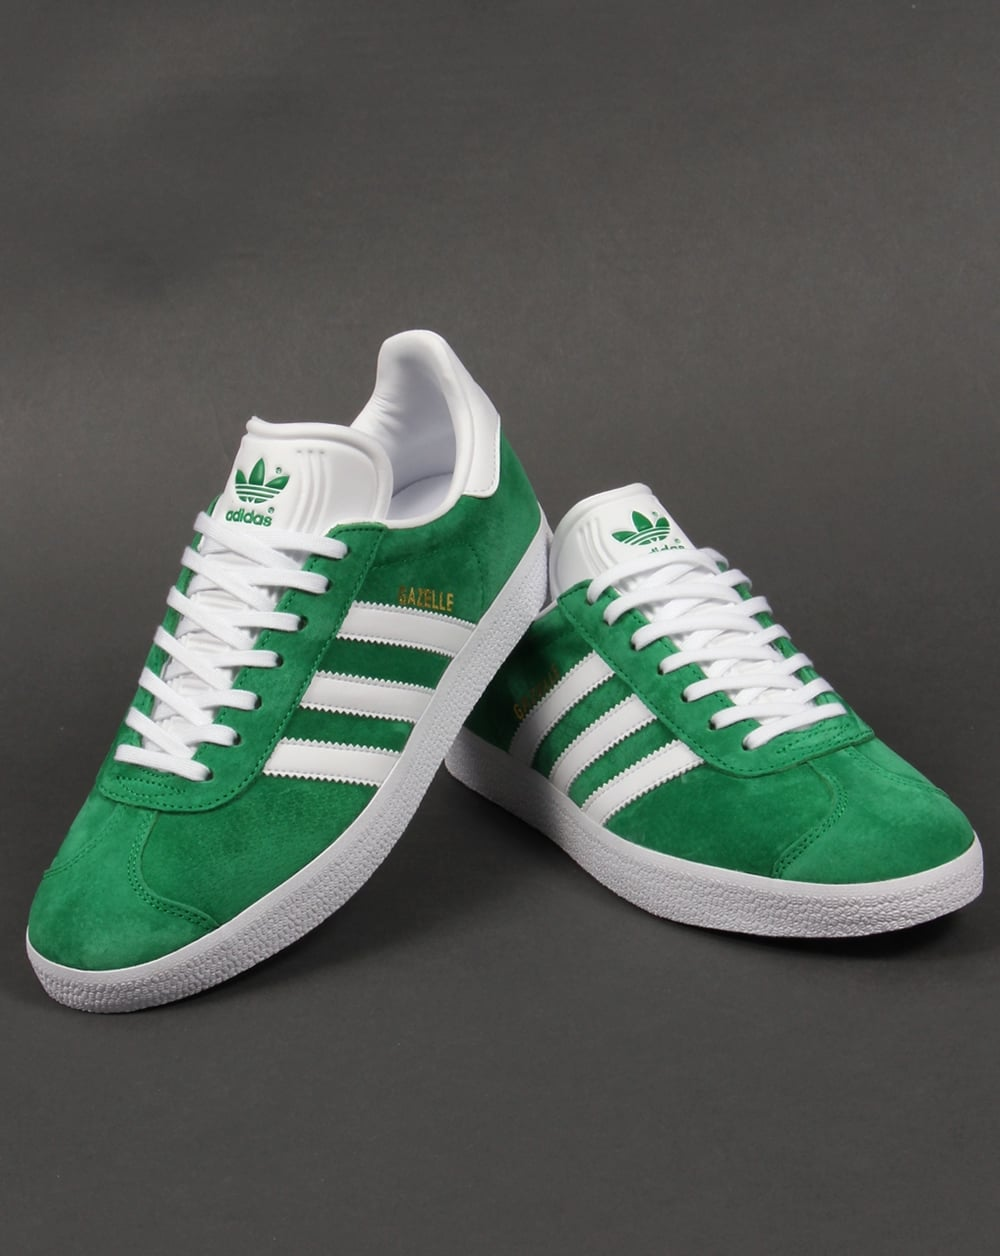 adidas gazelle blue green